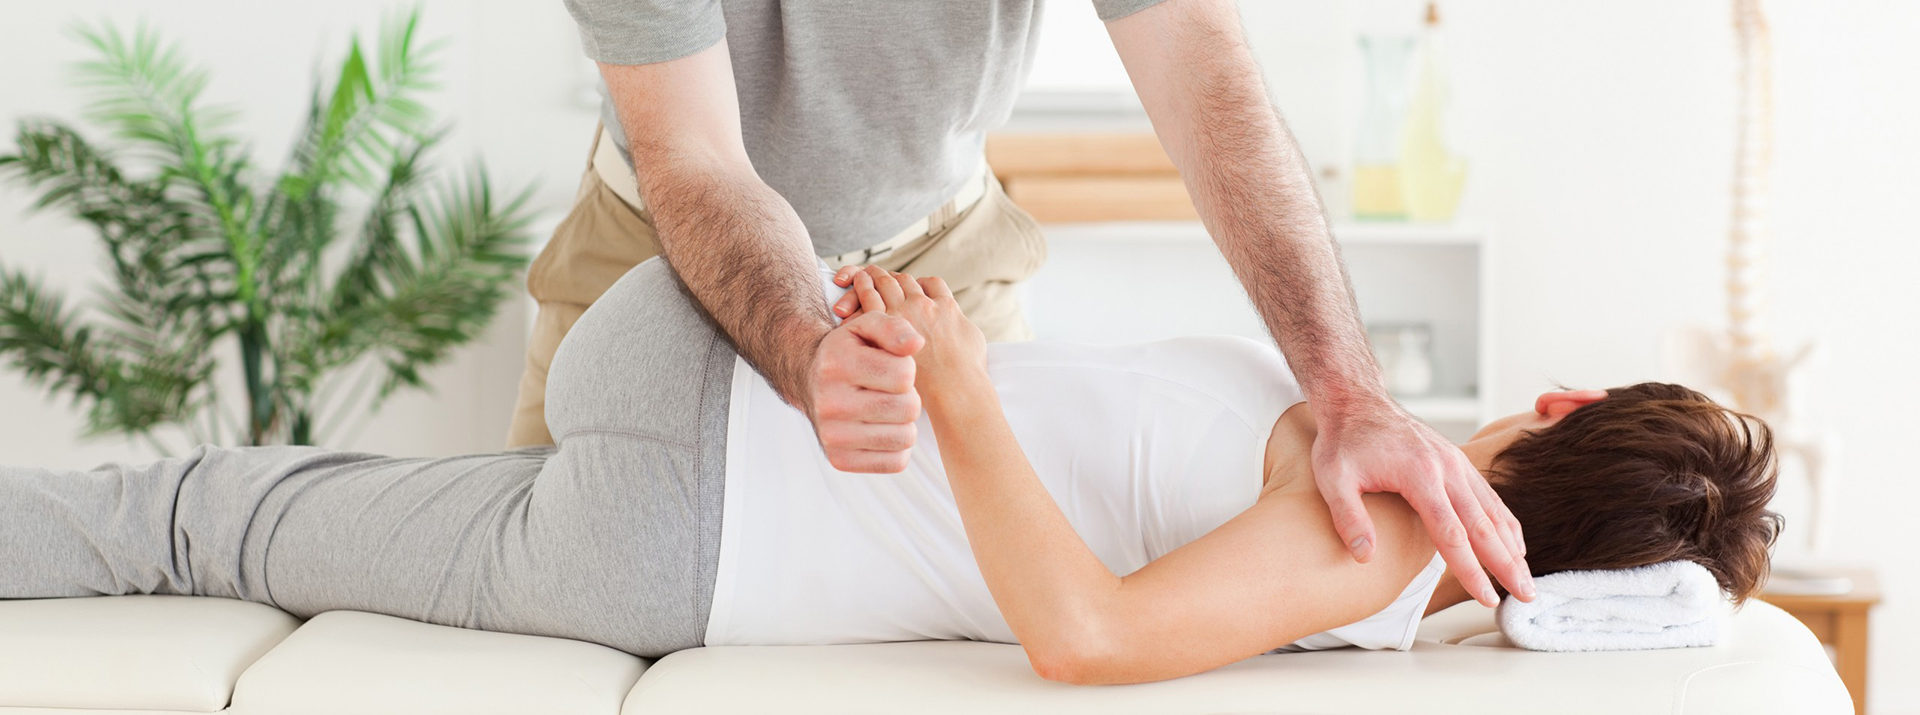 All our therapists are licensed professionals with years of experience